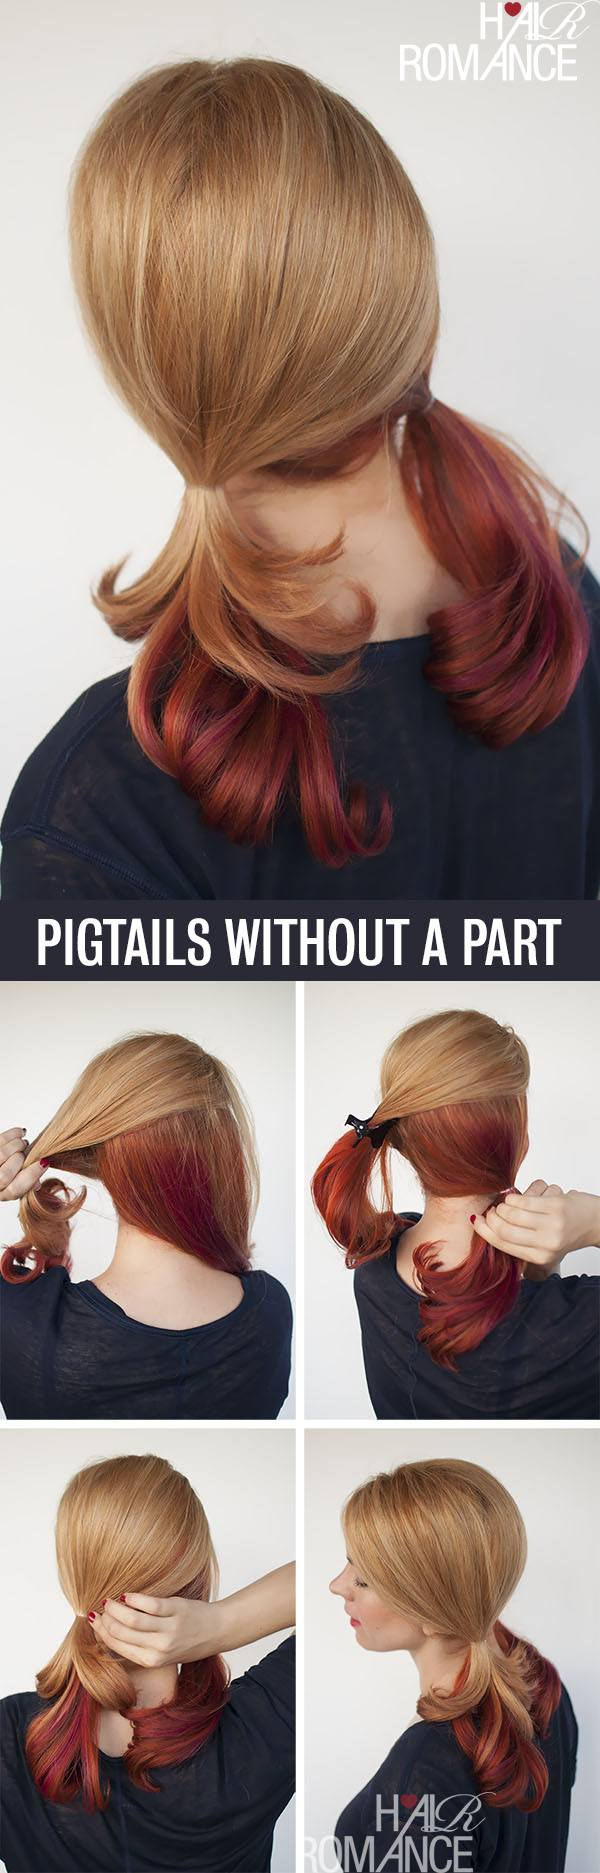 36 Quick And Easy Hairstyle For Busy Women